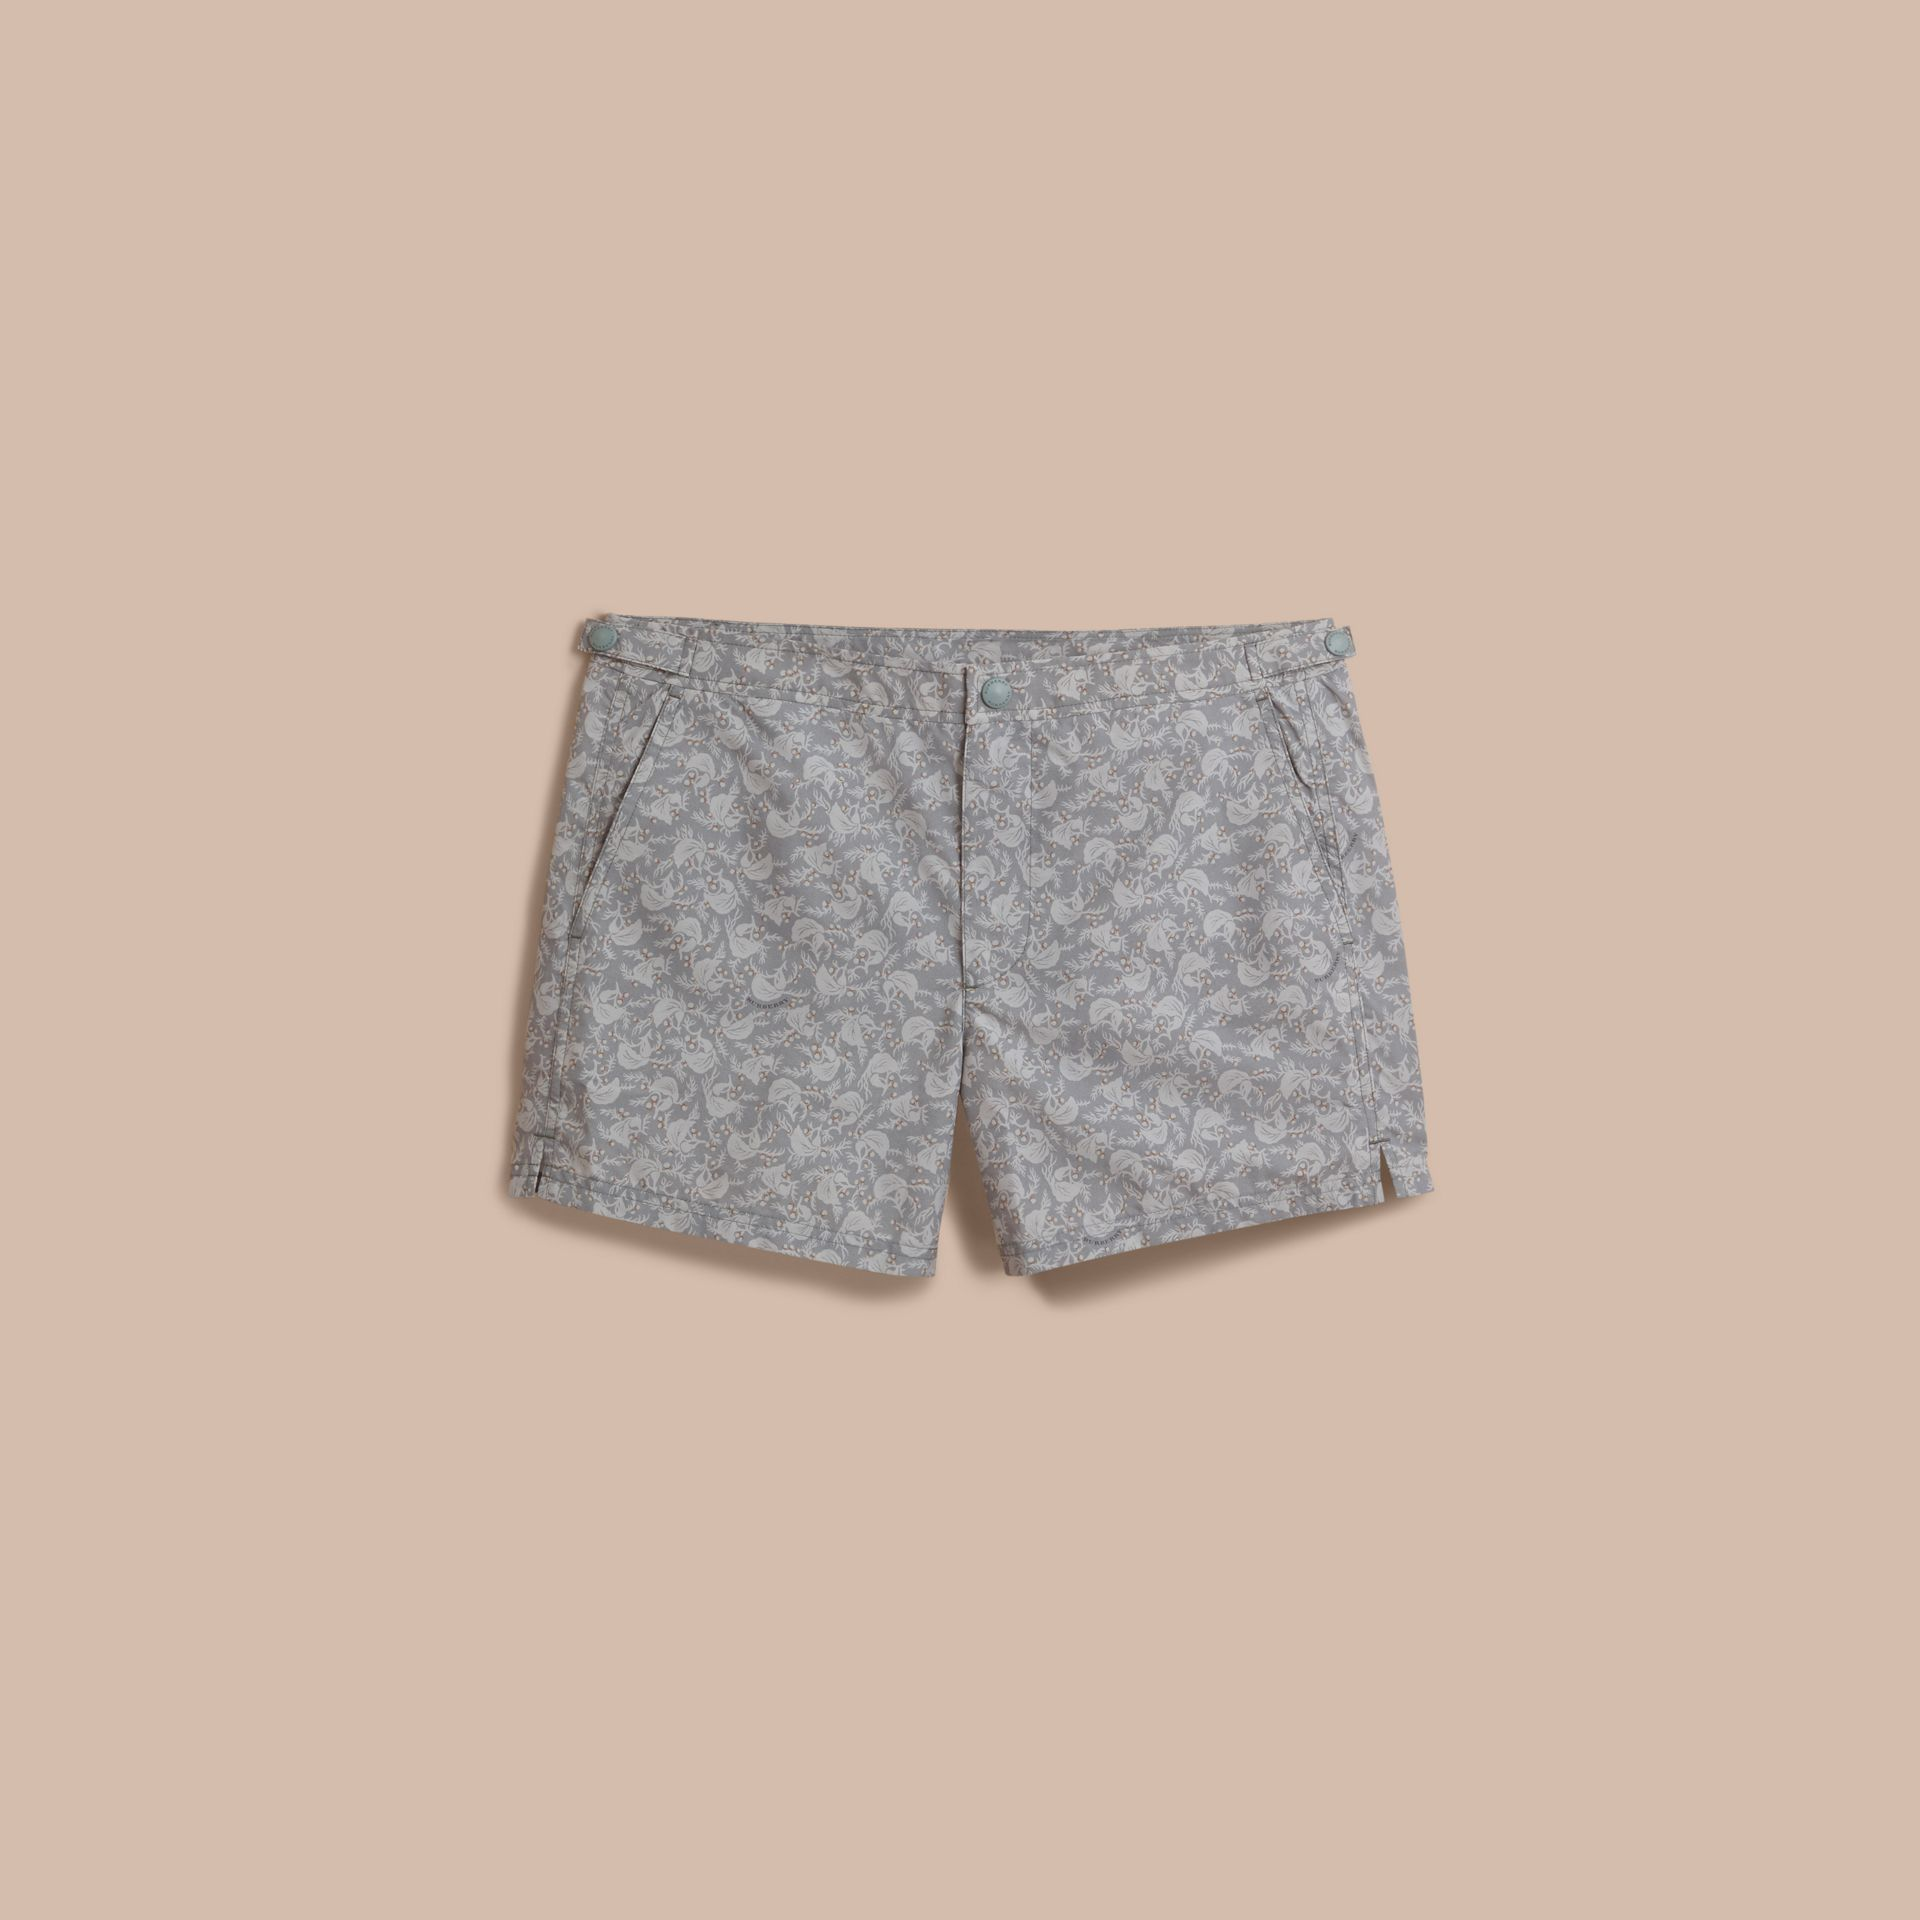 Leaf Print Swim Shorts in Blue Grey - Men | Burberry - gallery image 1